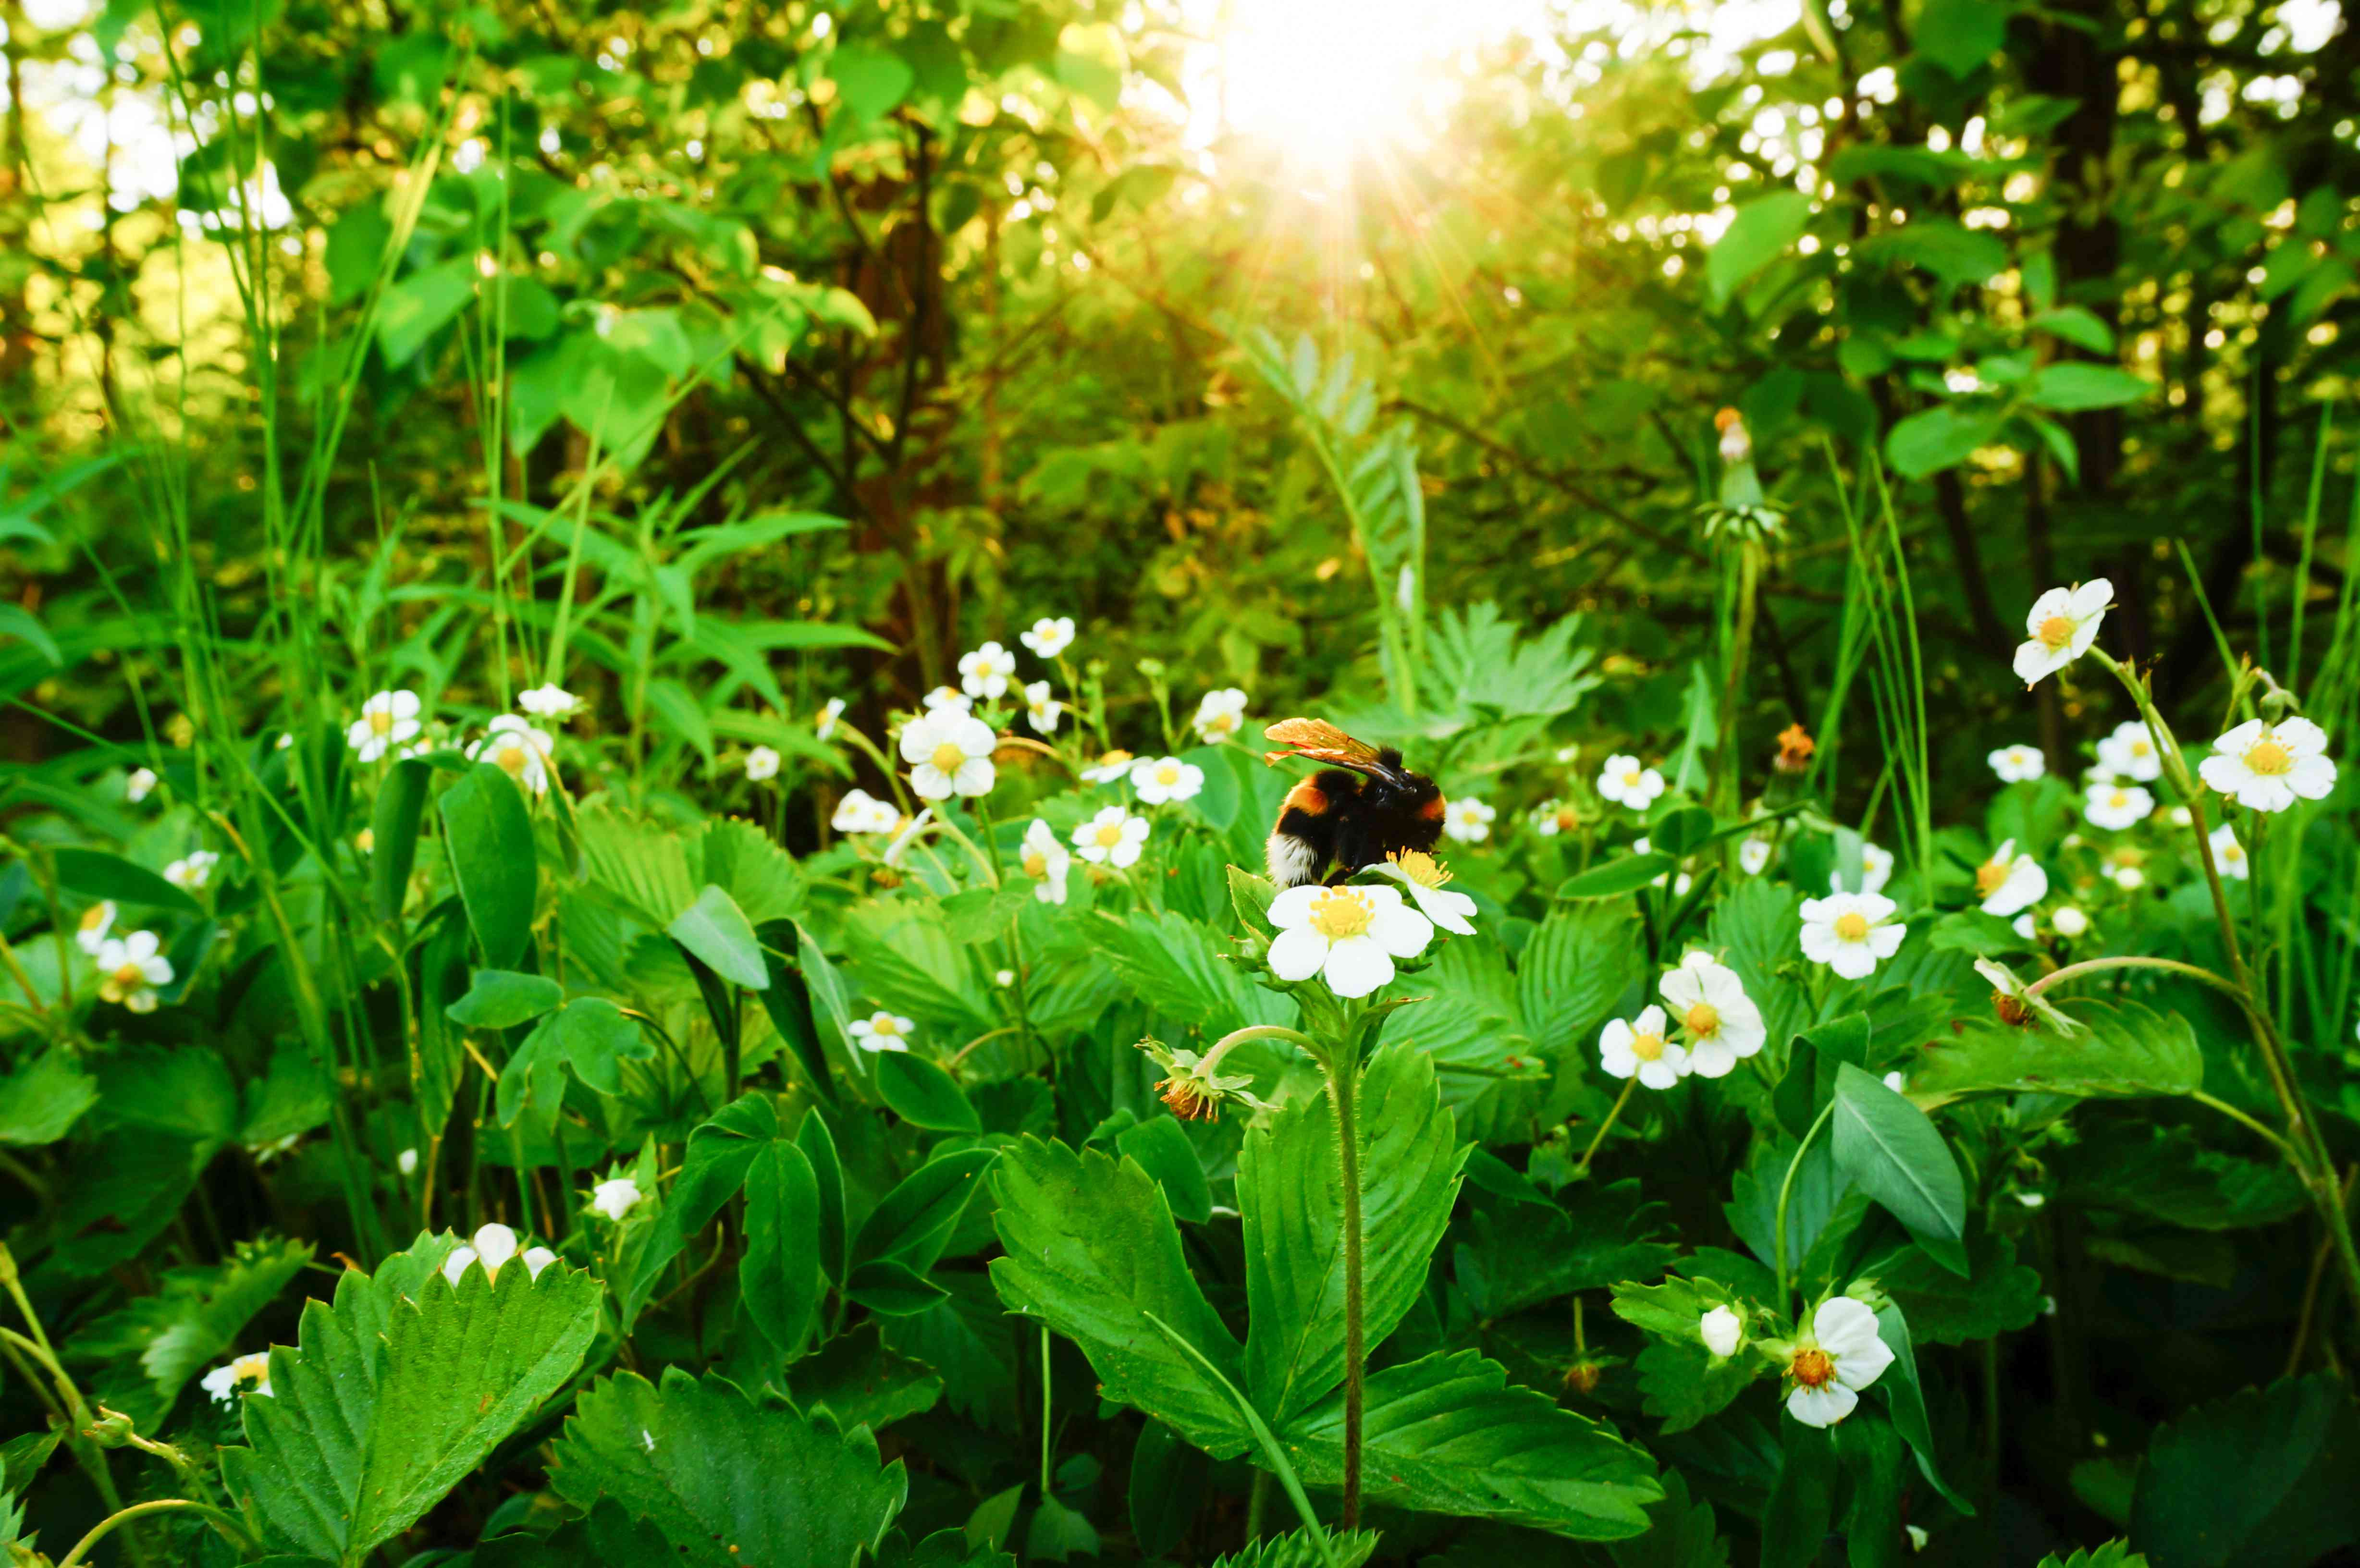 bumblebee on strawberry flowers